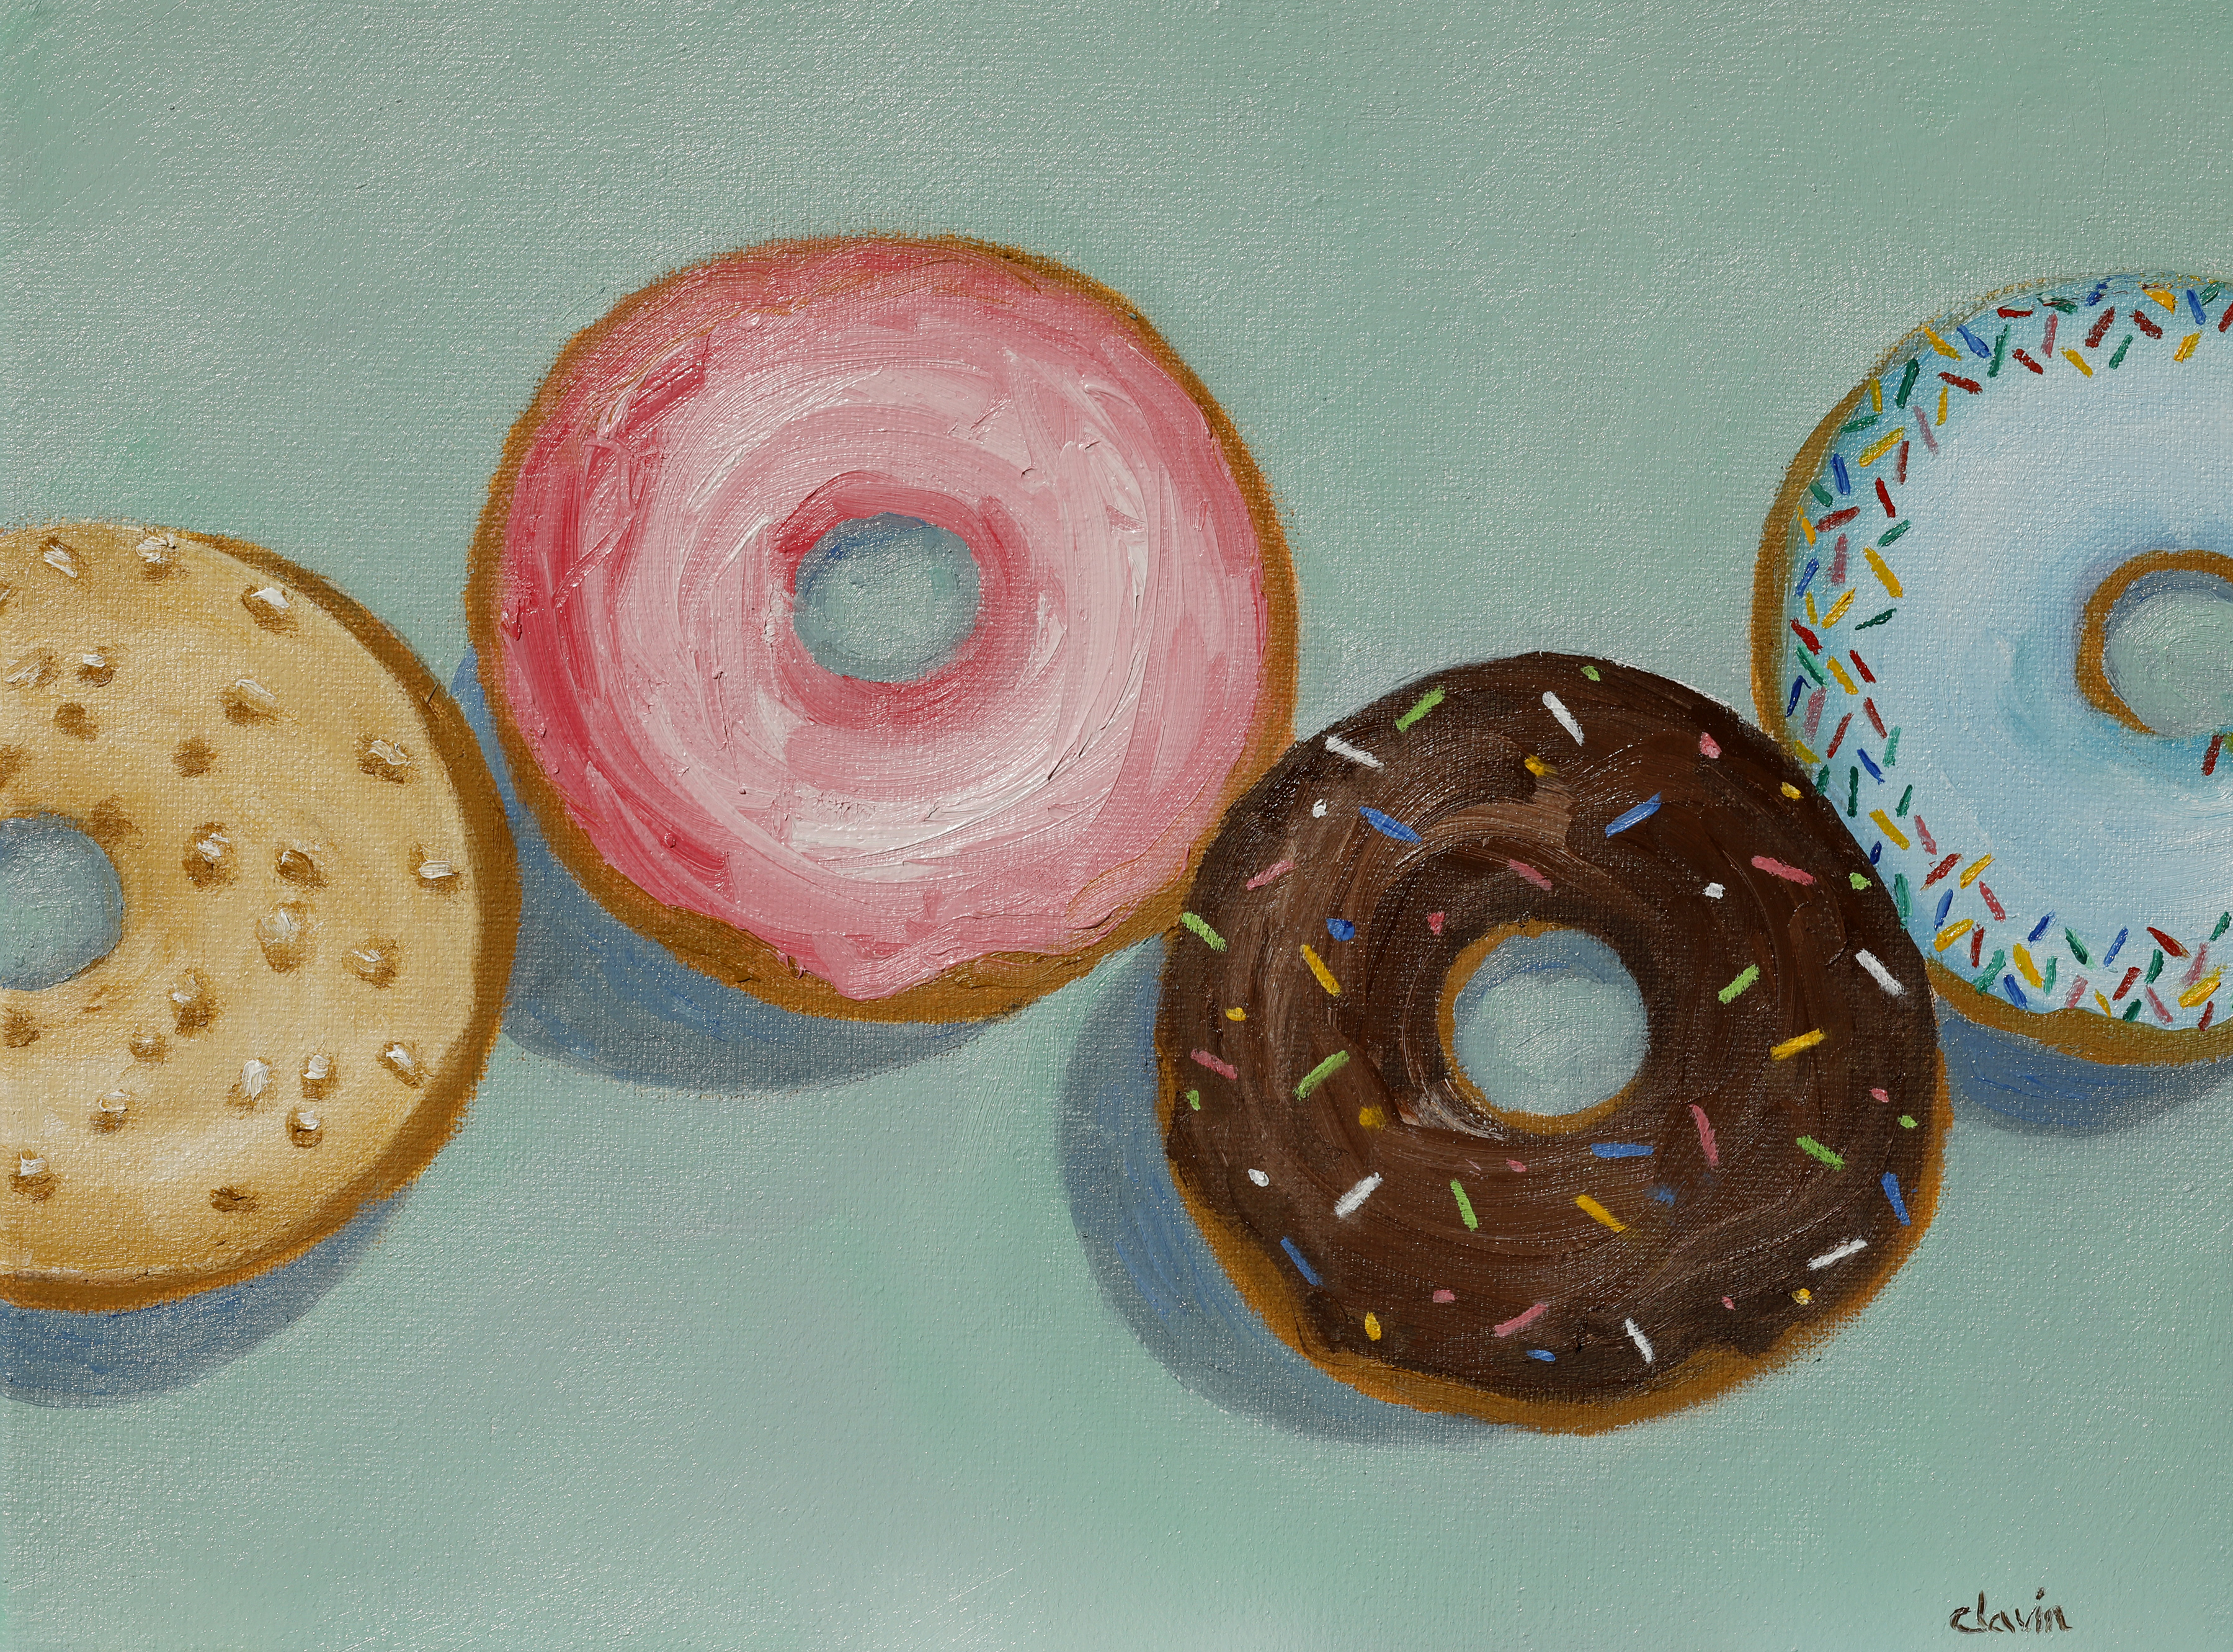 Donuts green background  9x12   $200.00